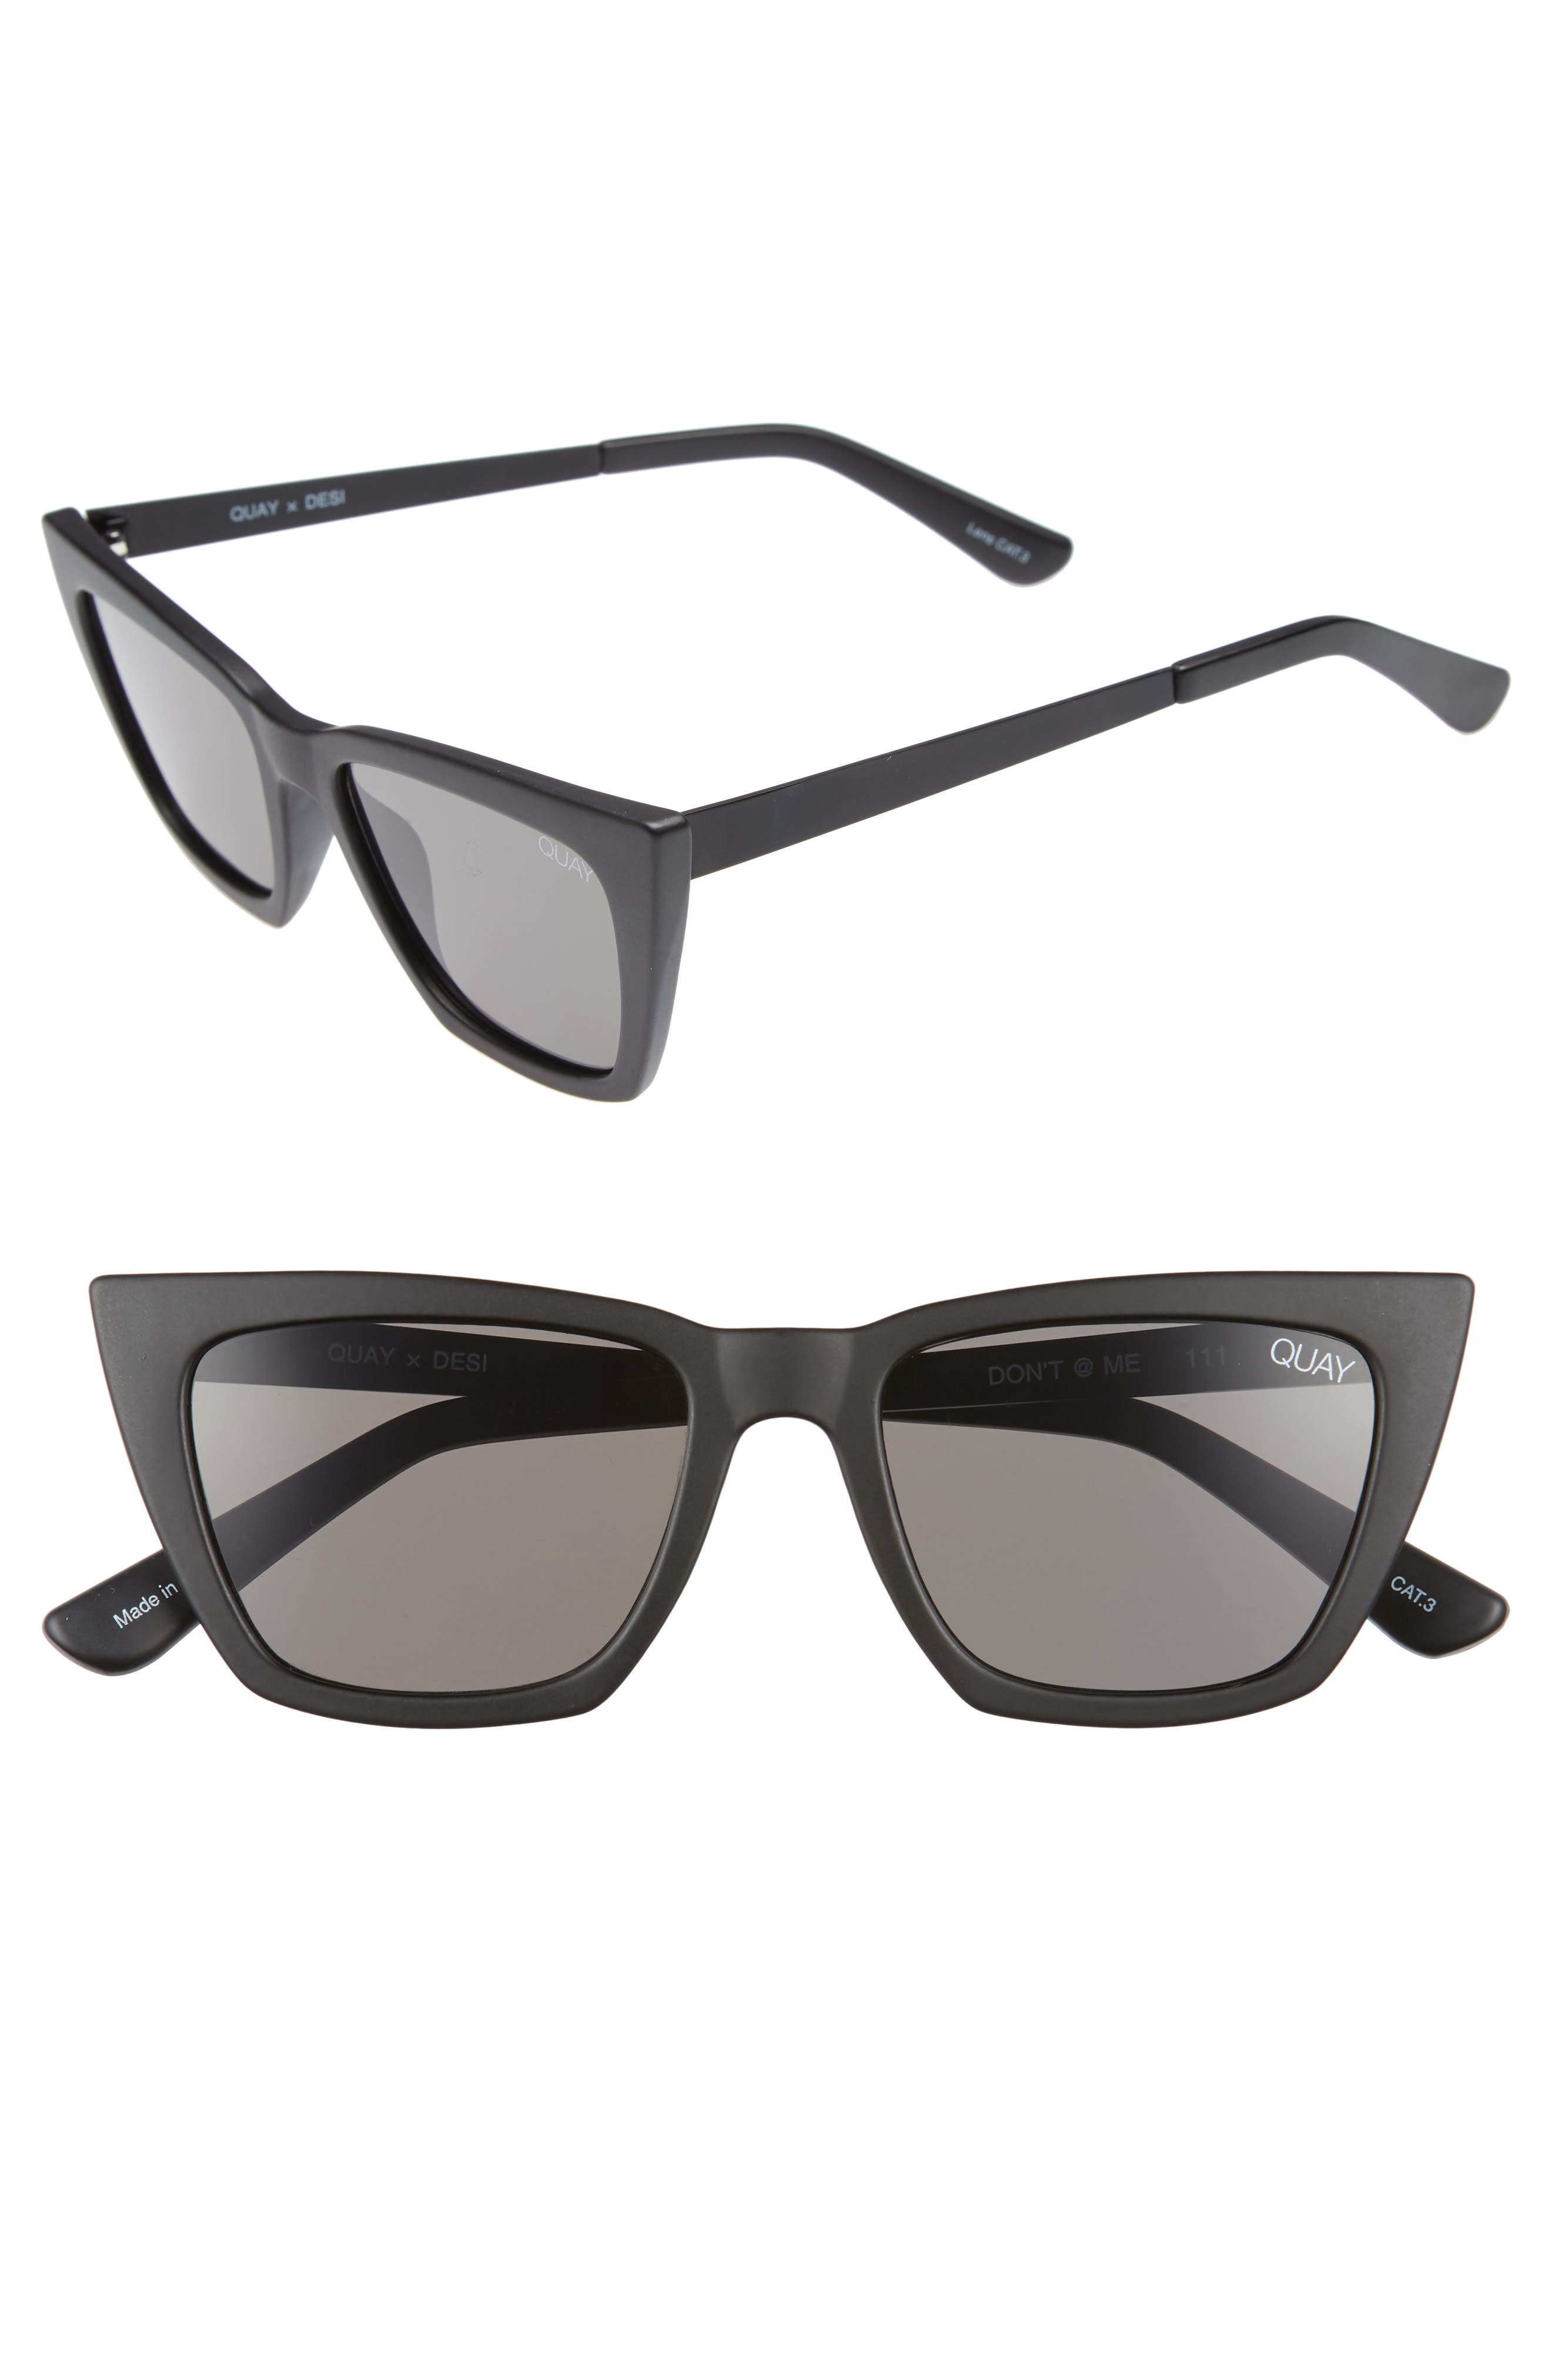 QUAY AUSTRALIA x Desi Perkins Don't @ Me 48mm Cat Eye Sunglasses, Main, color, BLACK/ SMOKE